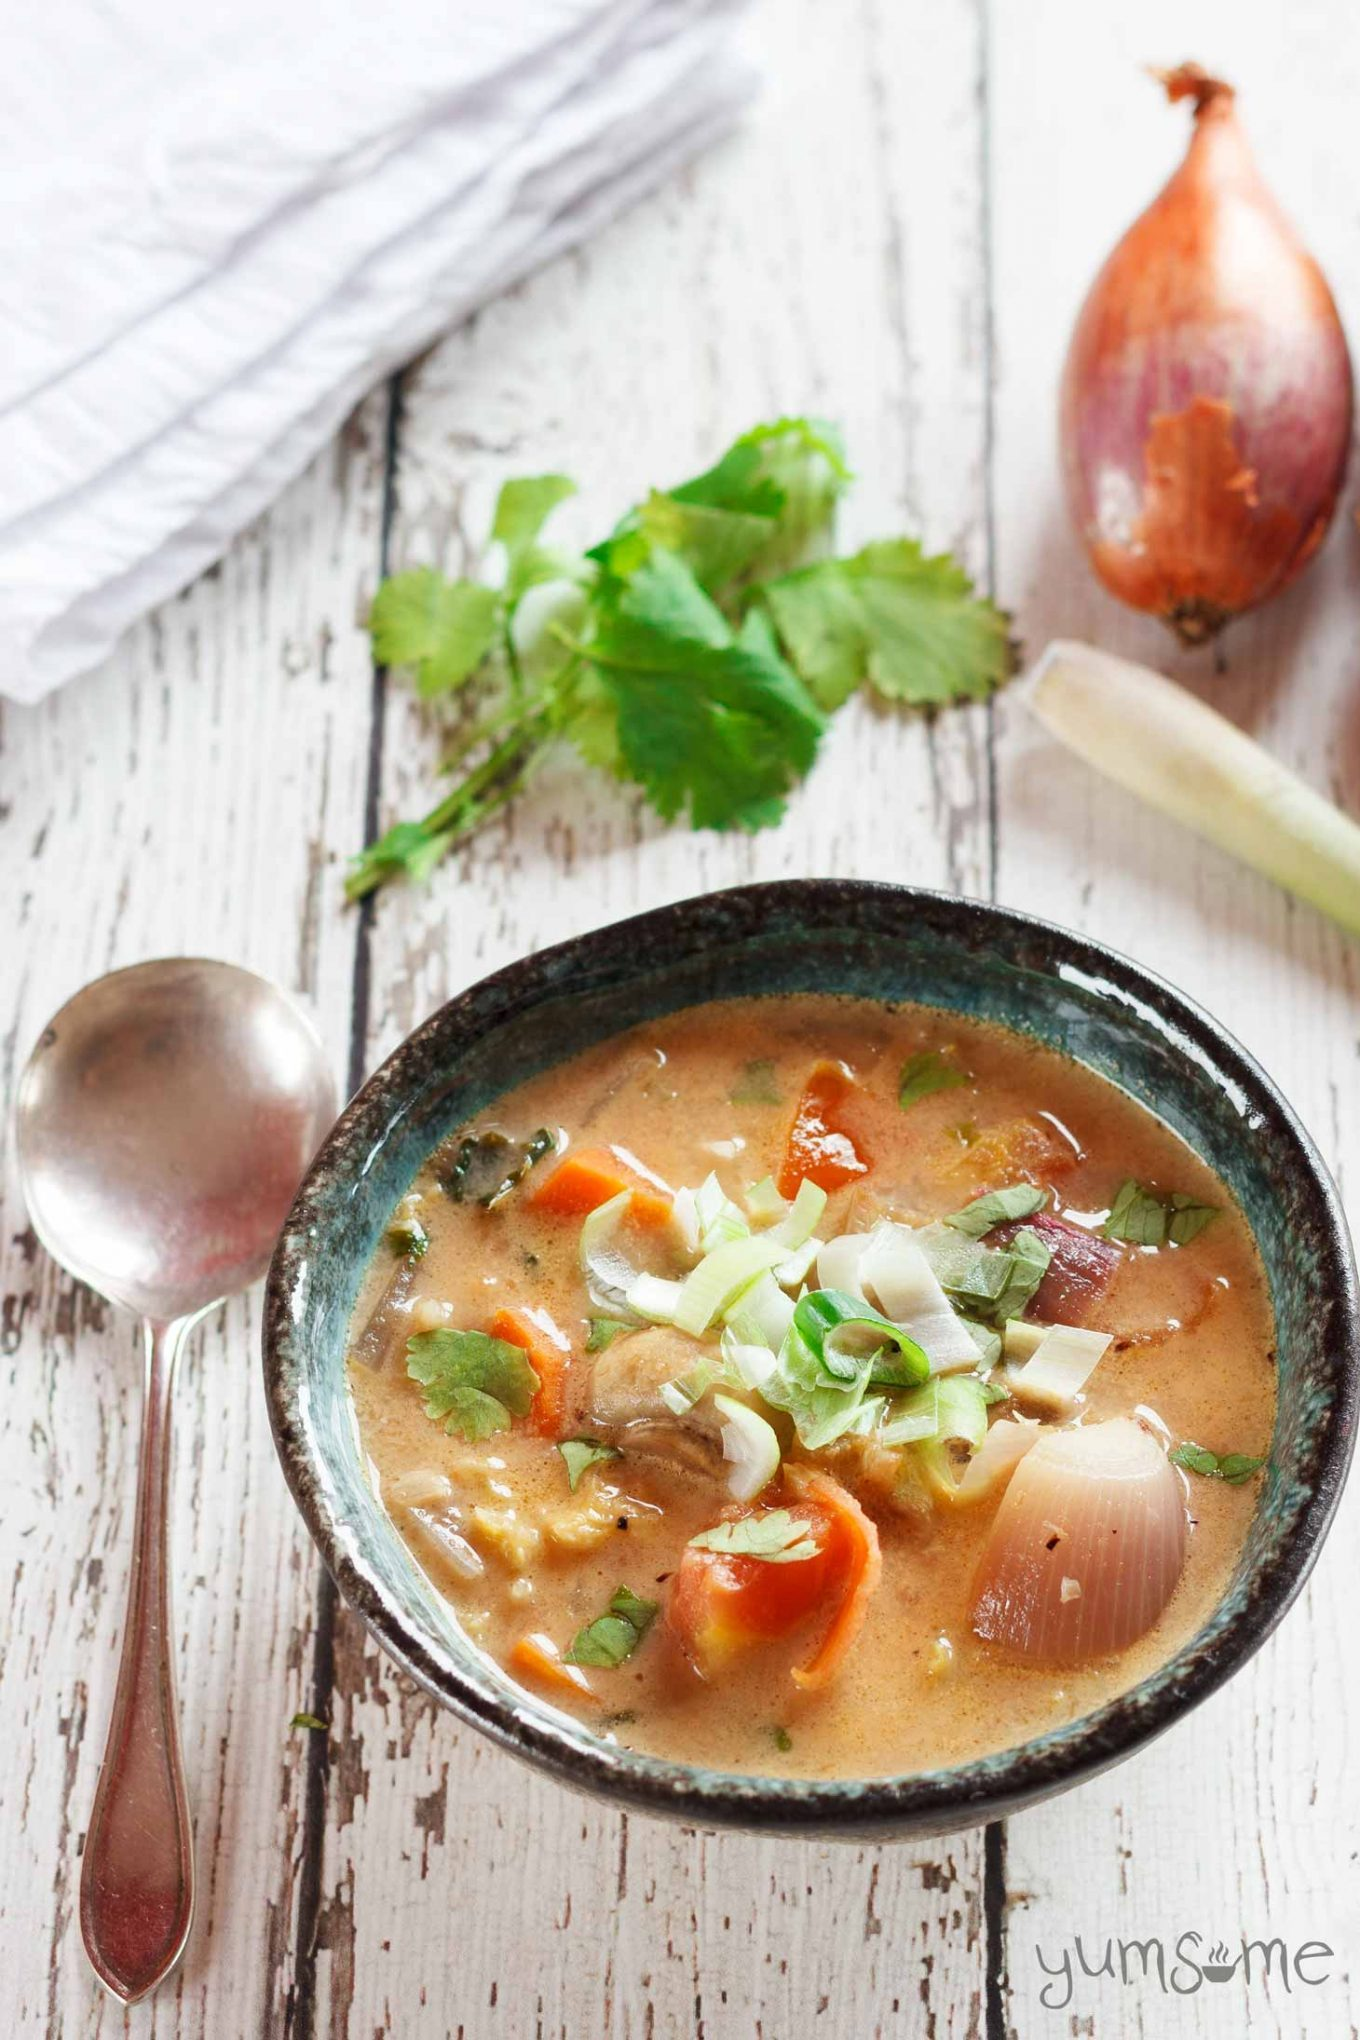 Fragrant and spicy, tom yam - a delicious hot and sour soup - is deservedly one of Thailand's most famous dishes. | yumsome.com